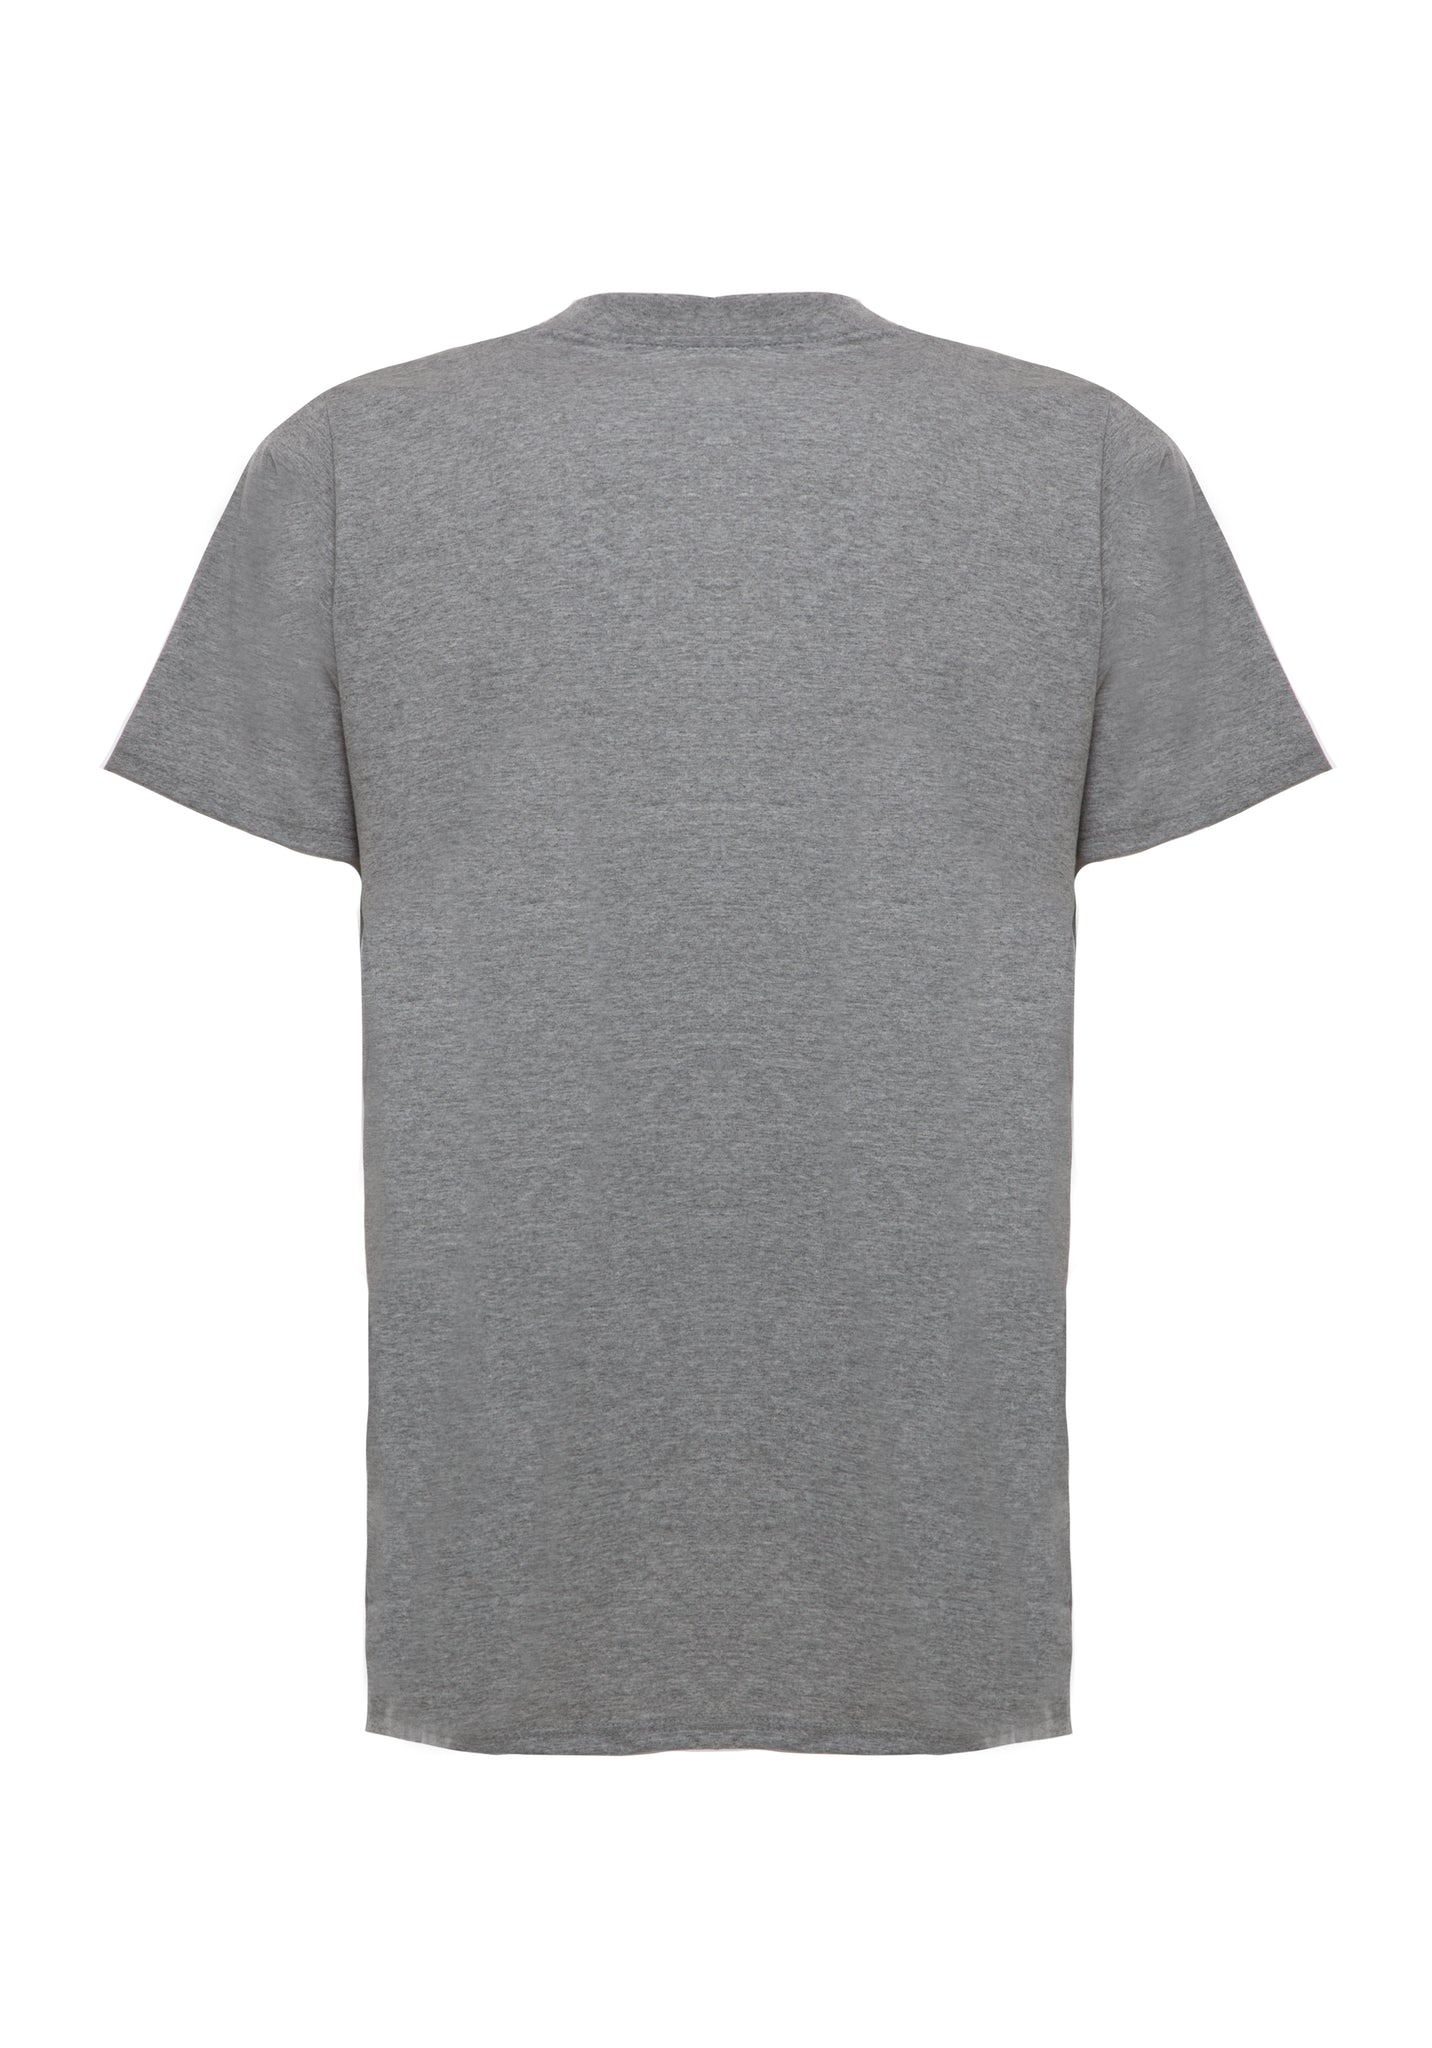 T-shirt Heart Grey